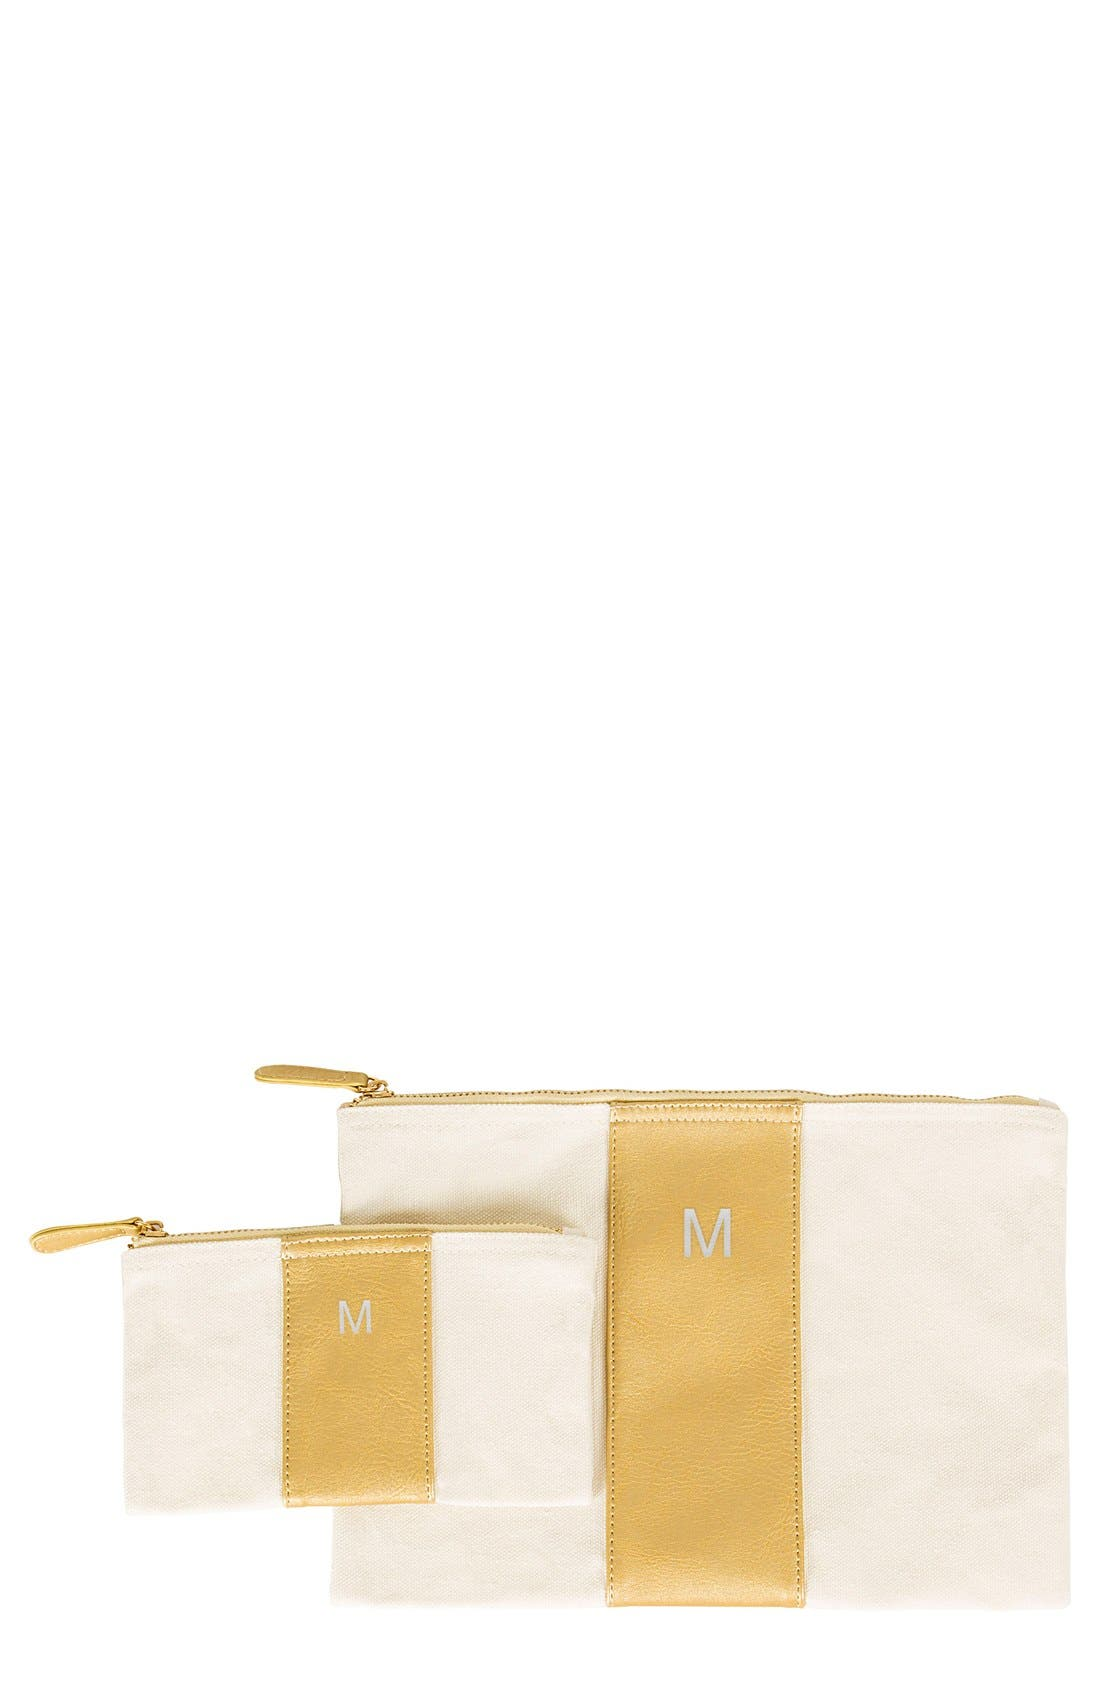 Personalized Faux Leather Clutch,                             Main thumbnail 31, color,